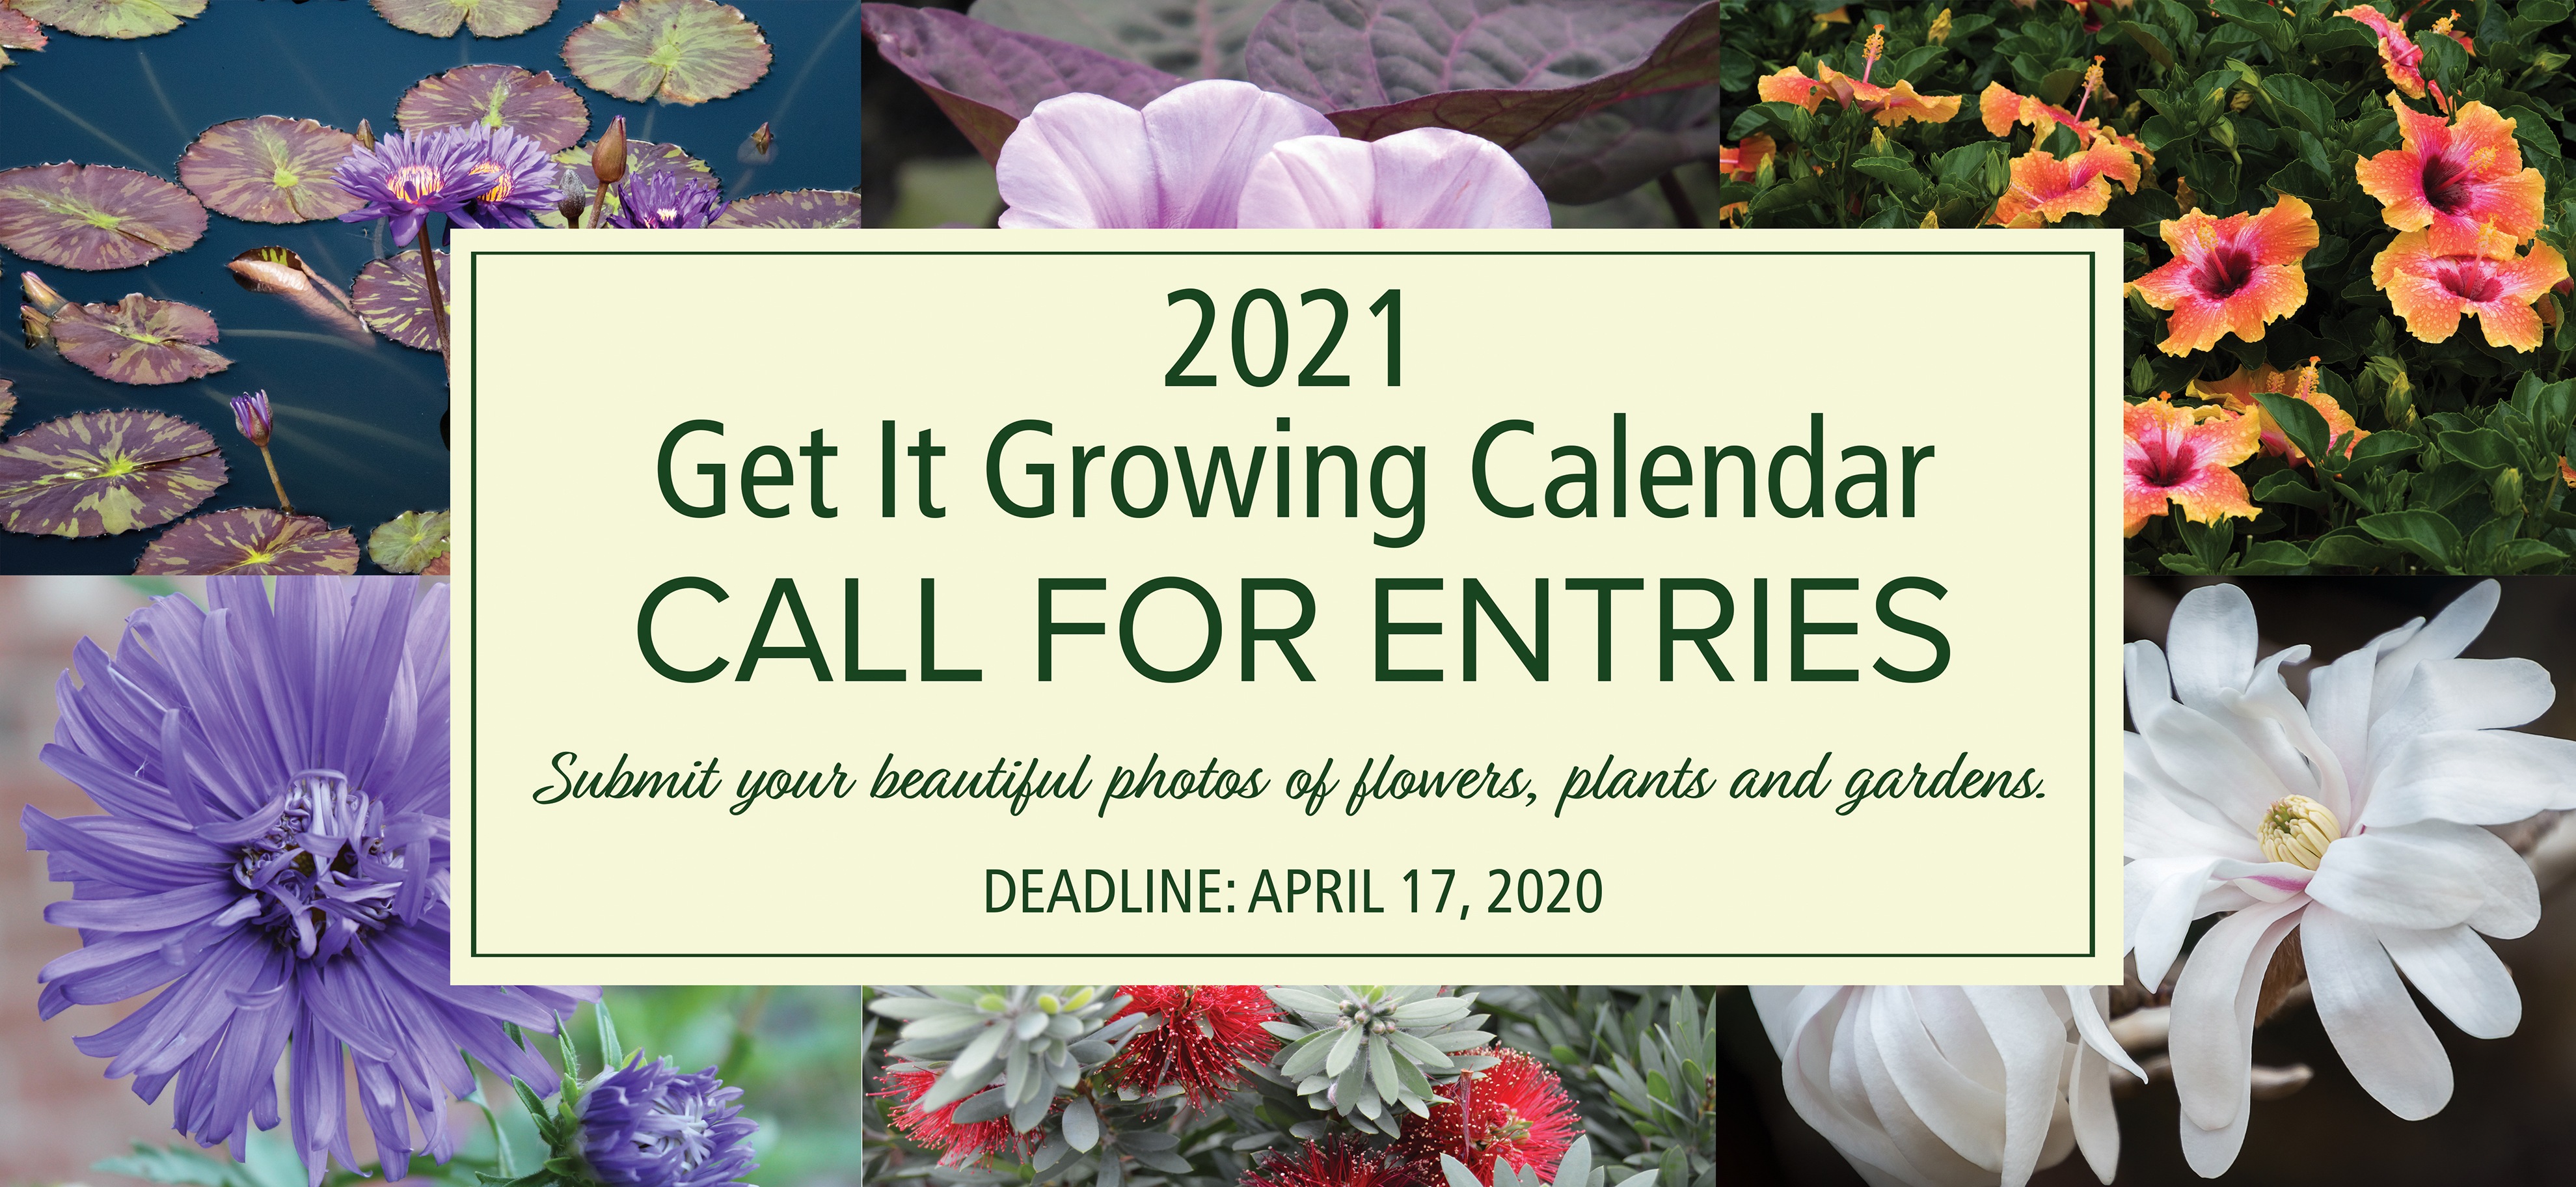 2021 Get It Growing Calendar Call for Entries. Submit your beautiful photos of flowers, plants and gardens. Deadline: April 17, 2020